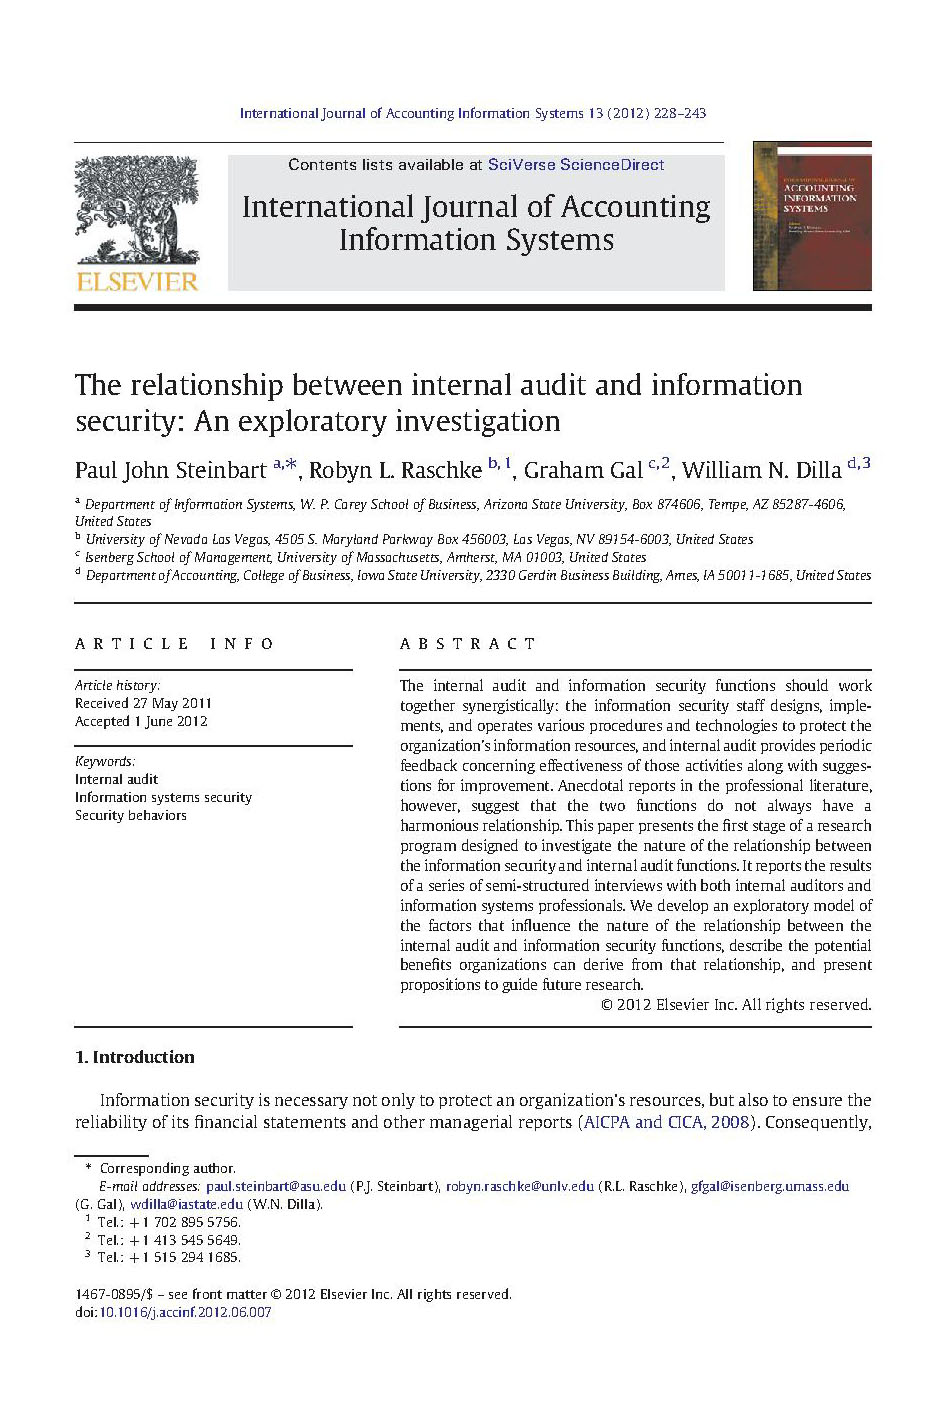 The relationship between internal audit and information security: An exploratory investigation